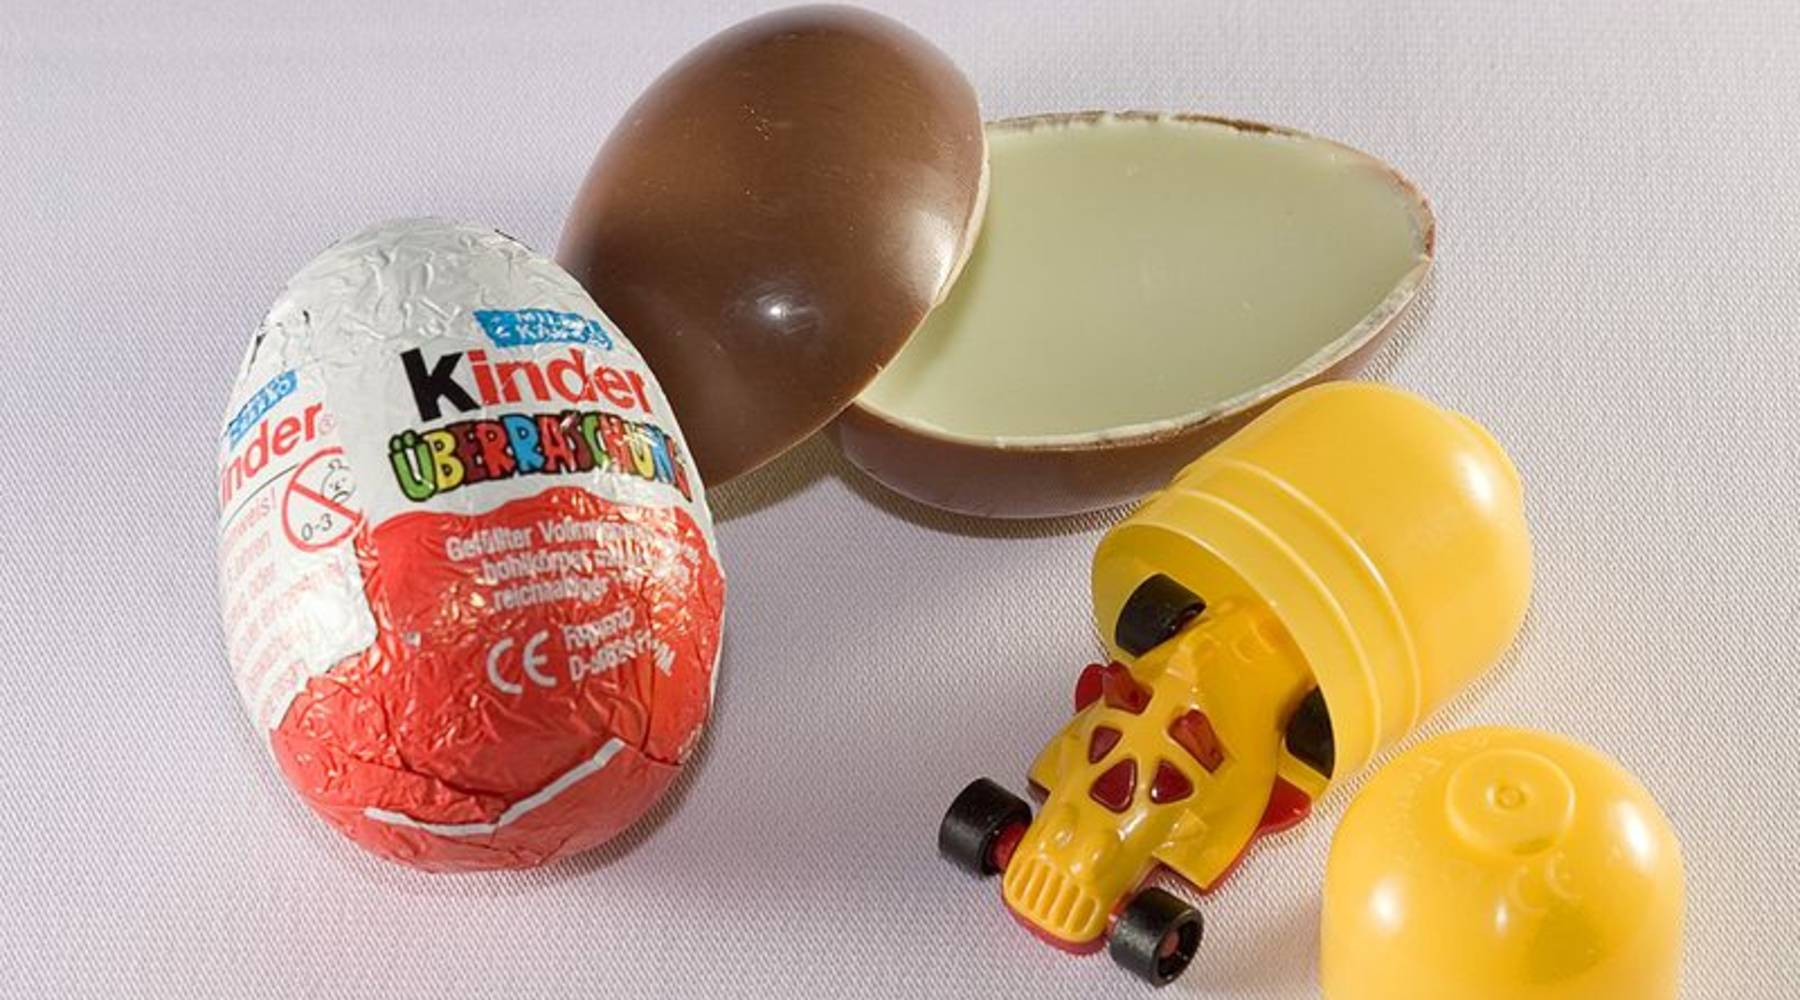 Kinder Egg Illegal Why The Fda Doesn T Like Chocolate Eggs With Toys Inside